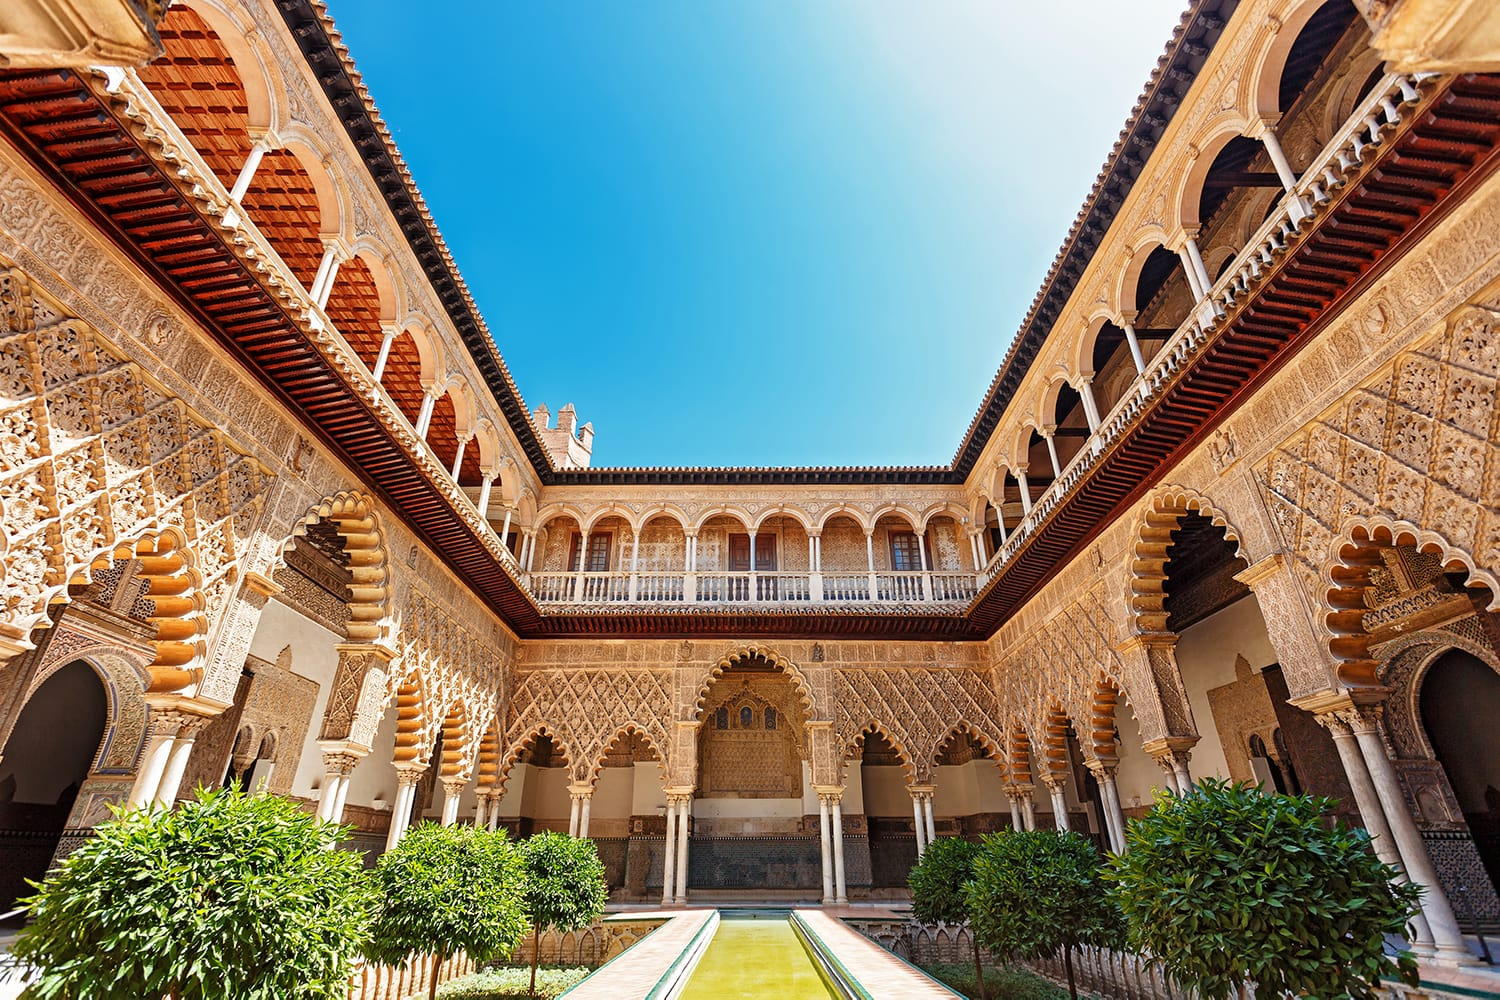 Palace of Alcazar, Famous Andalusian Architecture. Old Arab Palace in Seville, Spain.